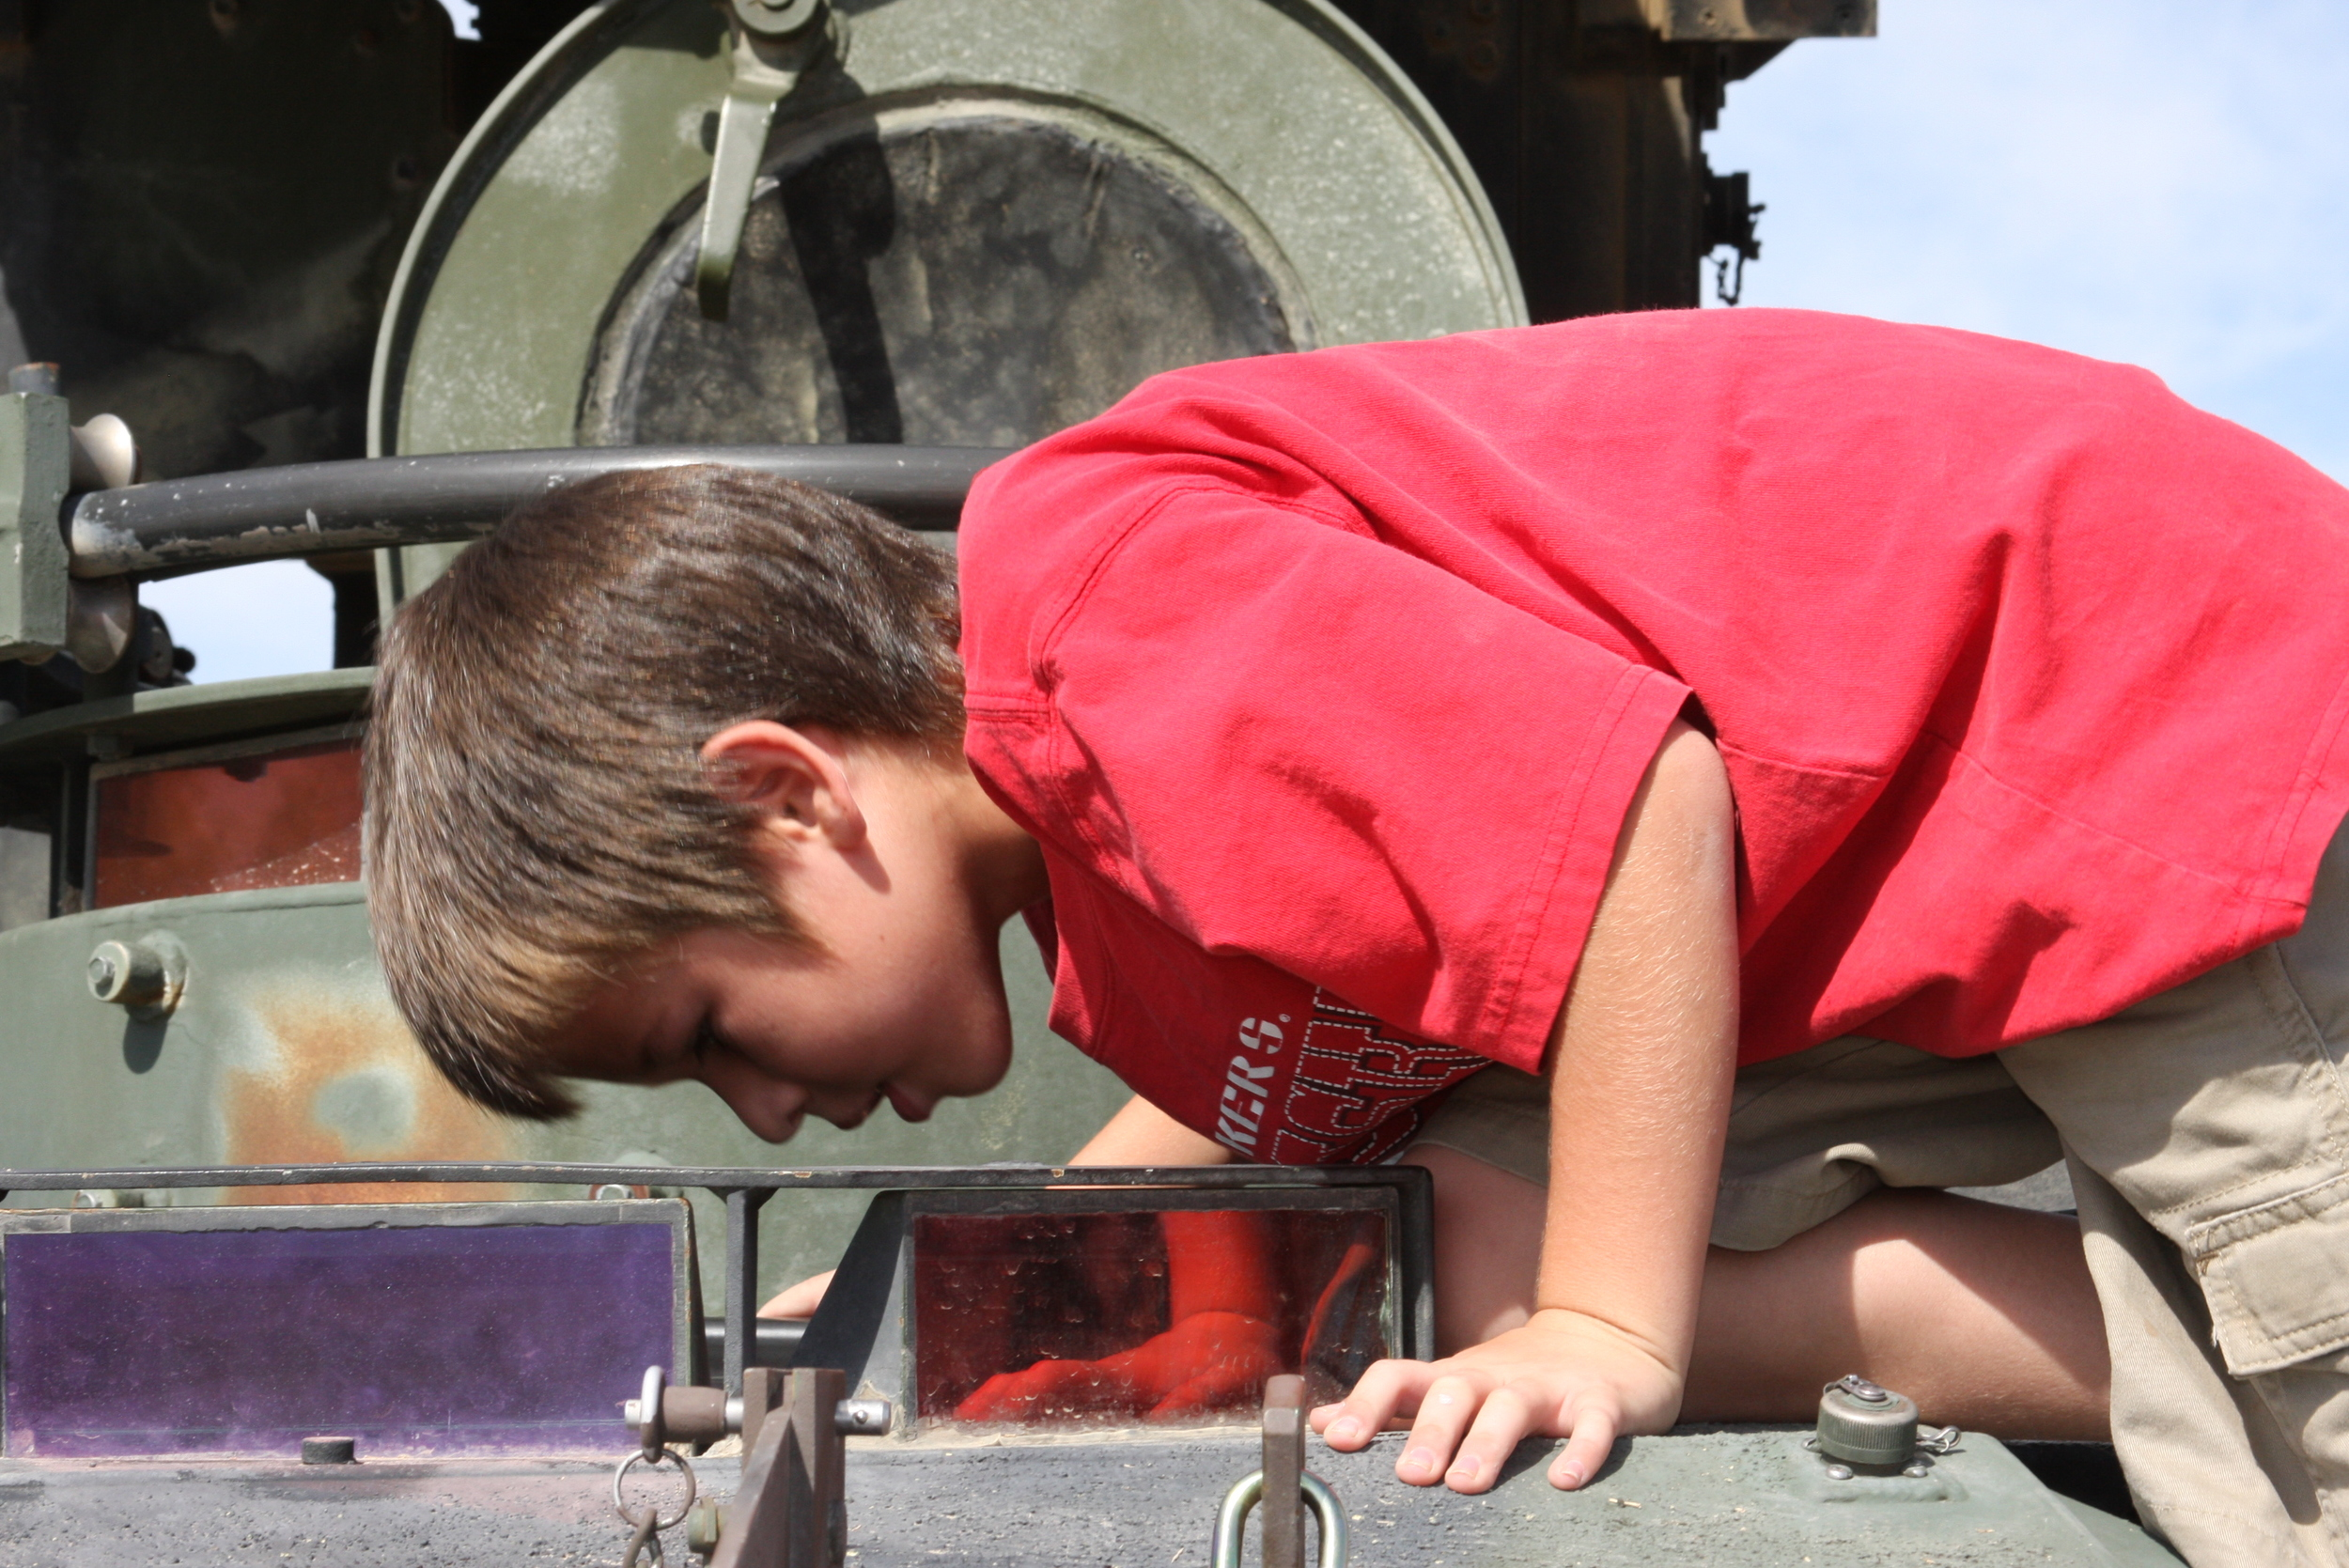 Zack Nelson, a second-grader at Palm Vista Elementary School in Twentynine Palms, Calif., peers down the assistant driver's hatch during the Wearable Power Prize competition technology showcase and kid's day at Del Valle Field.